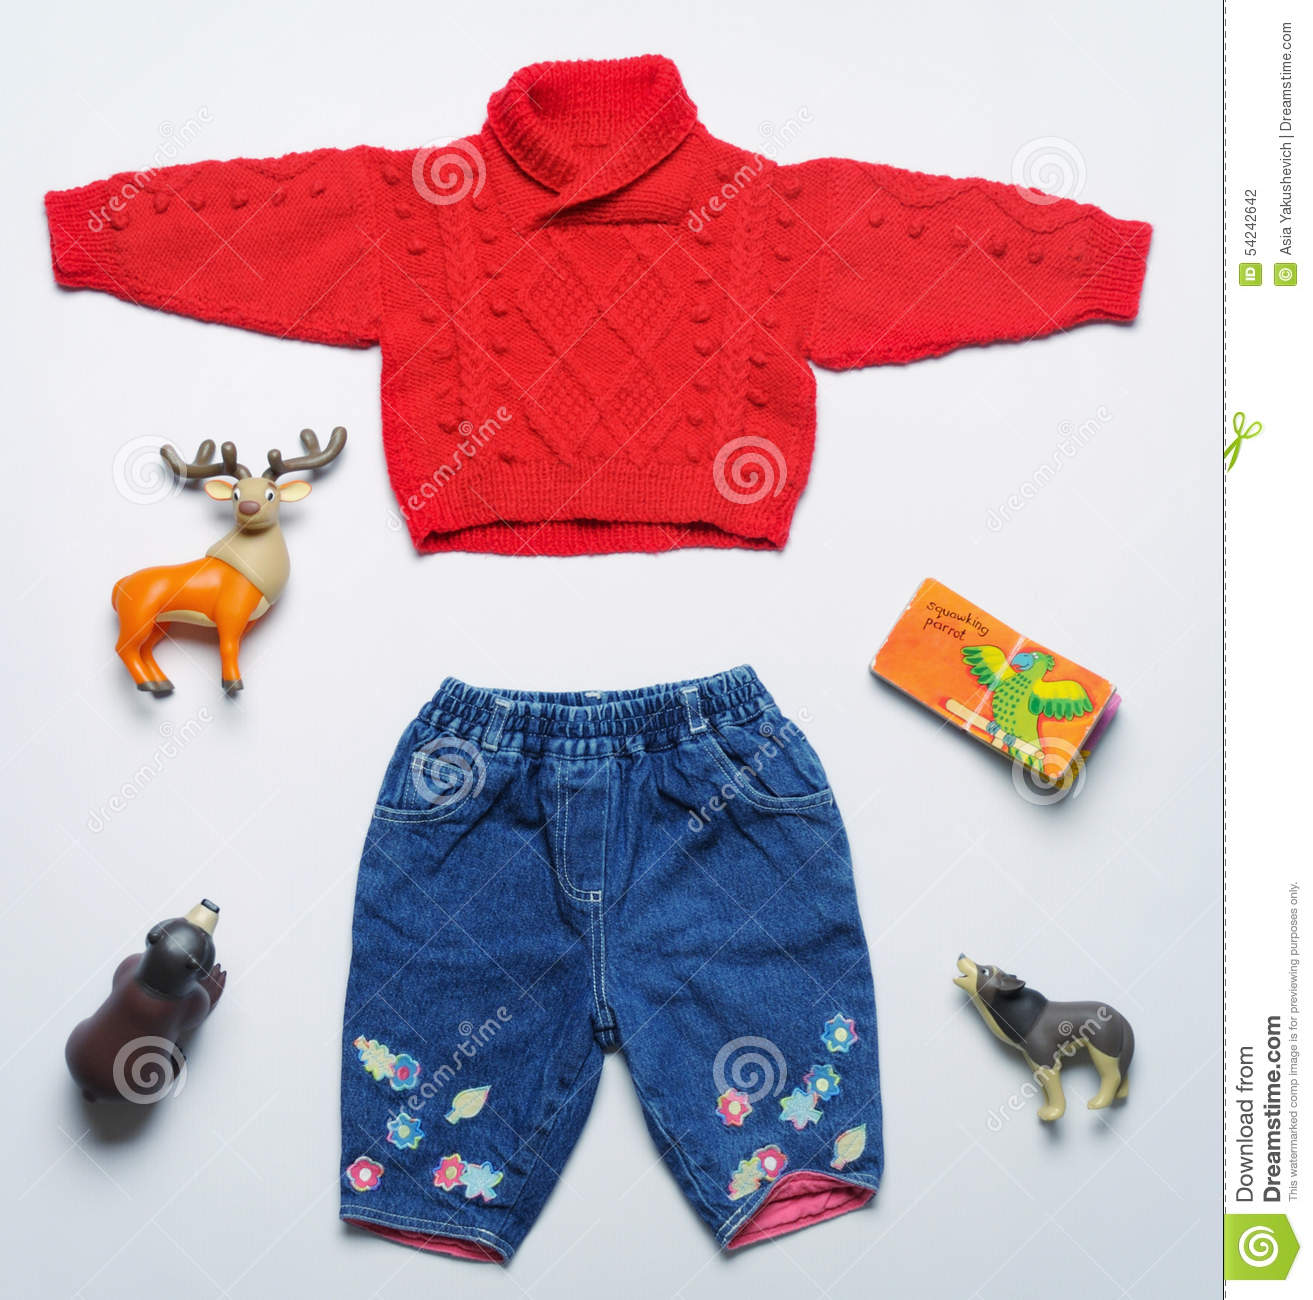 Top View Fashion Trendy Look Baby Clothes And Toy Stuff